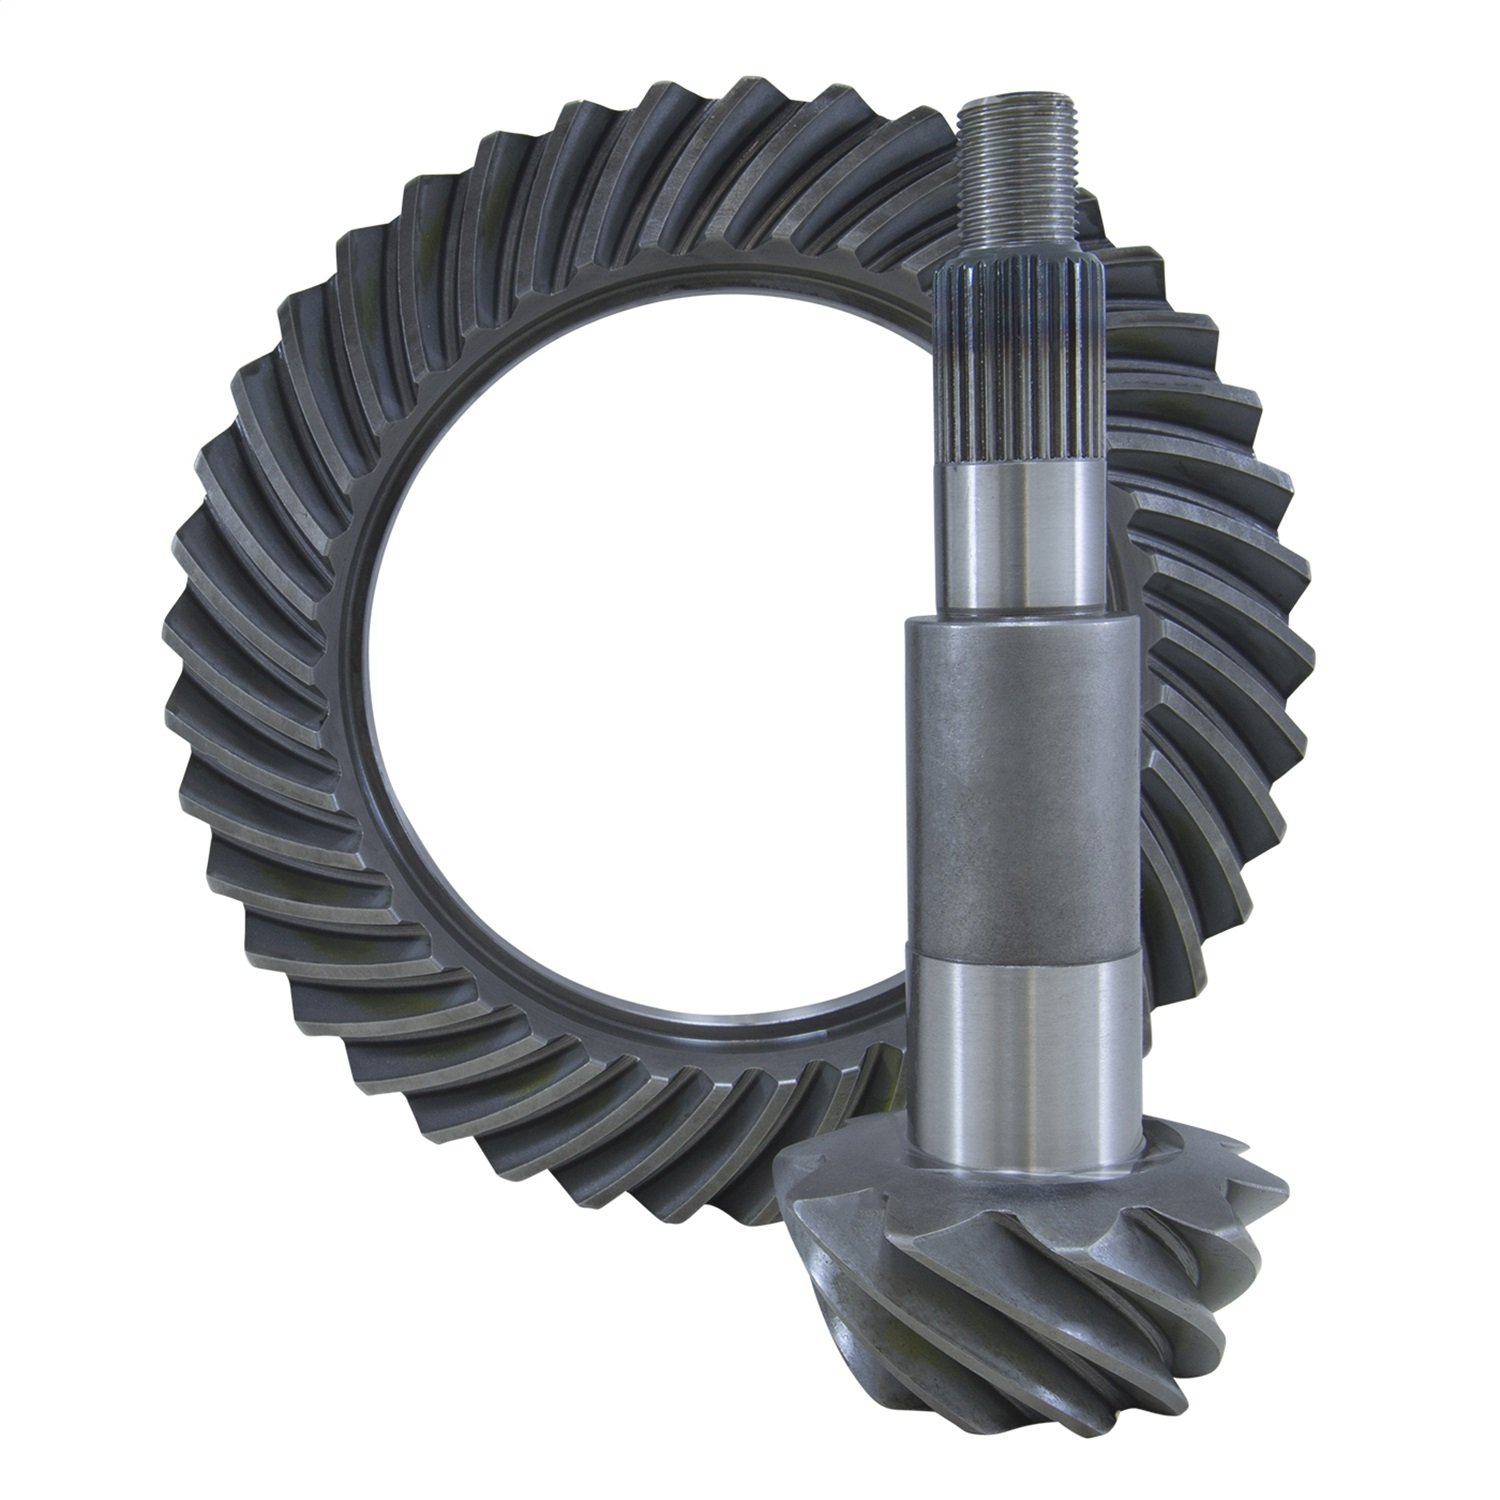 Yukon Gear & Axle (YG D70-617) High Performance Ring & Pinion Gear Set for Dana 70 Differential